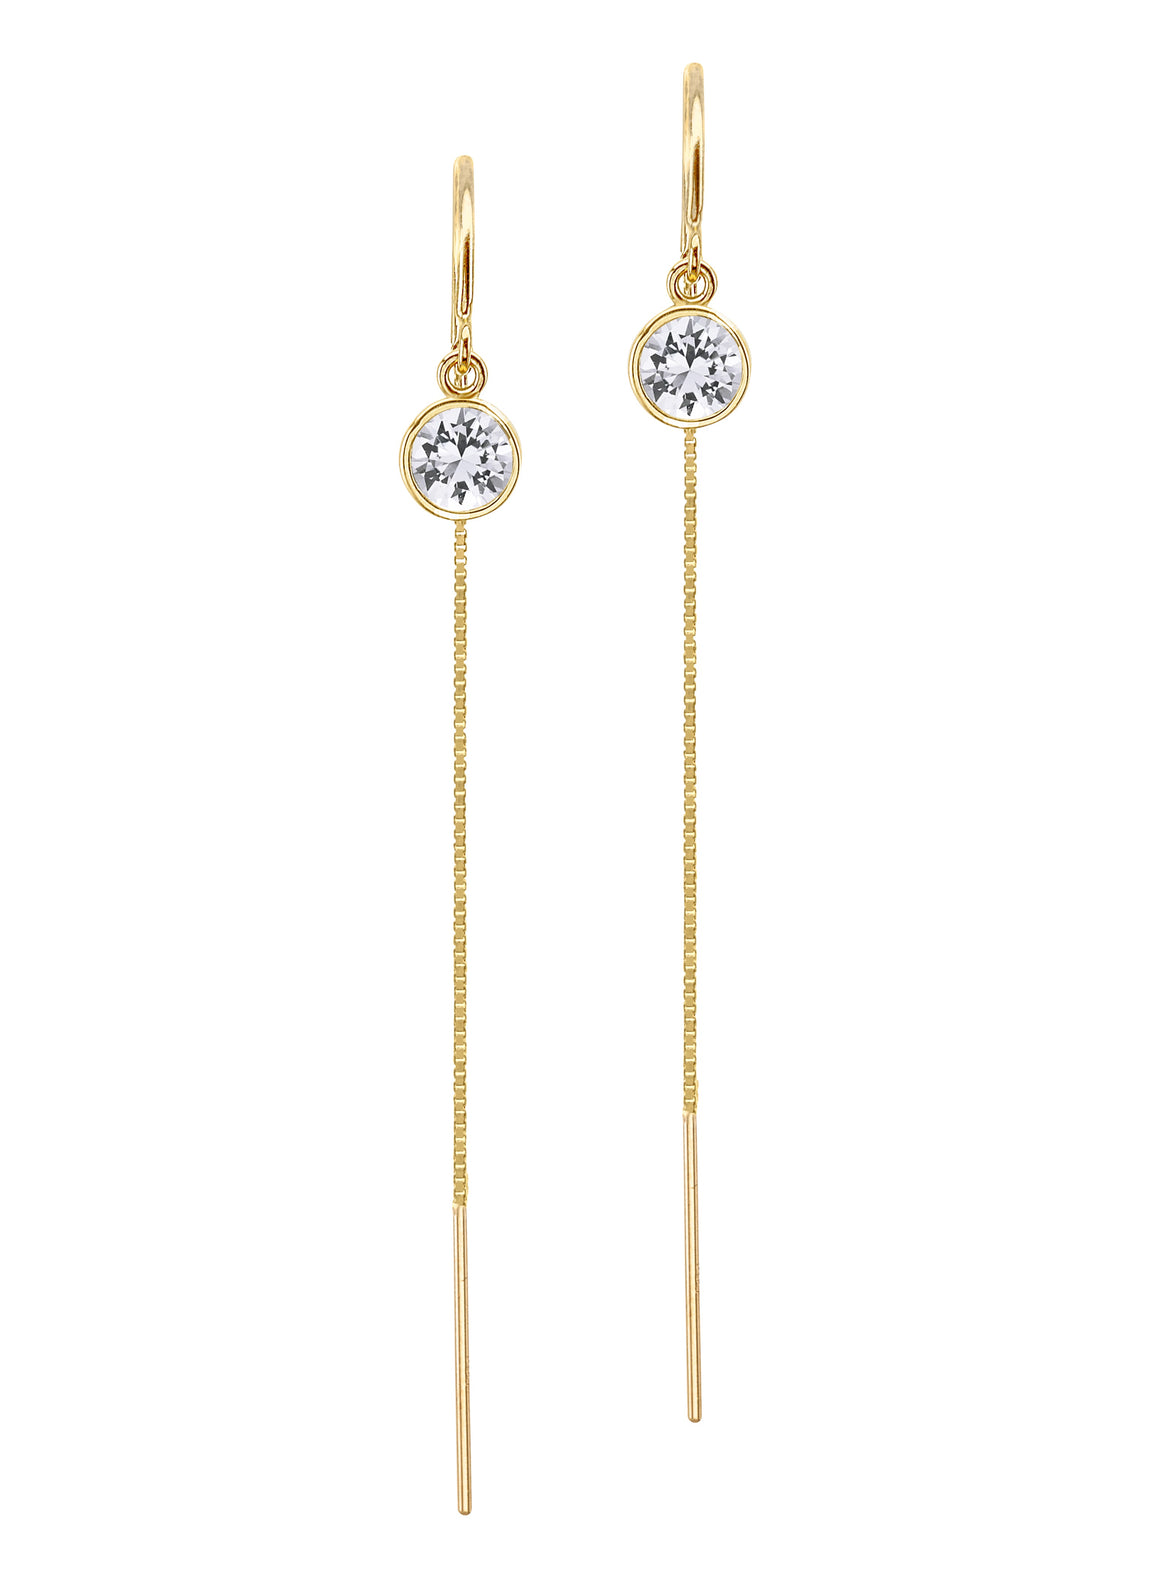 14K Yellow Gold Floating White Sapphire Box Chain Threader Earrings